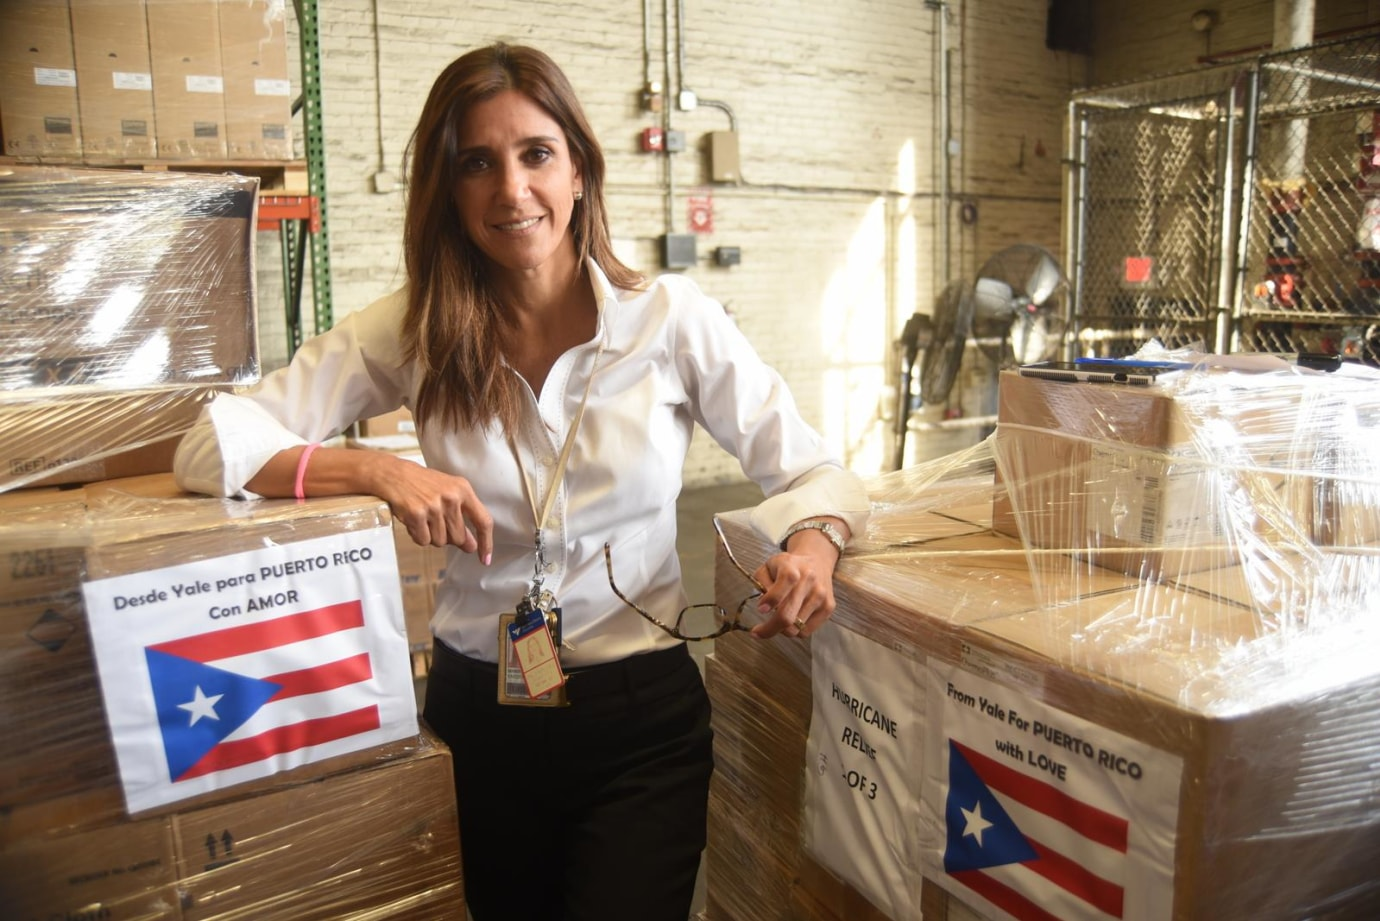 Marietta Vazquez coordinated a shipment of 15,000 pounds of medical supplies to Puerto Rico after Hurricane Maria.